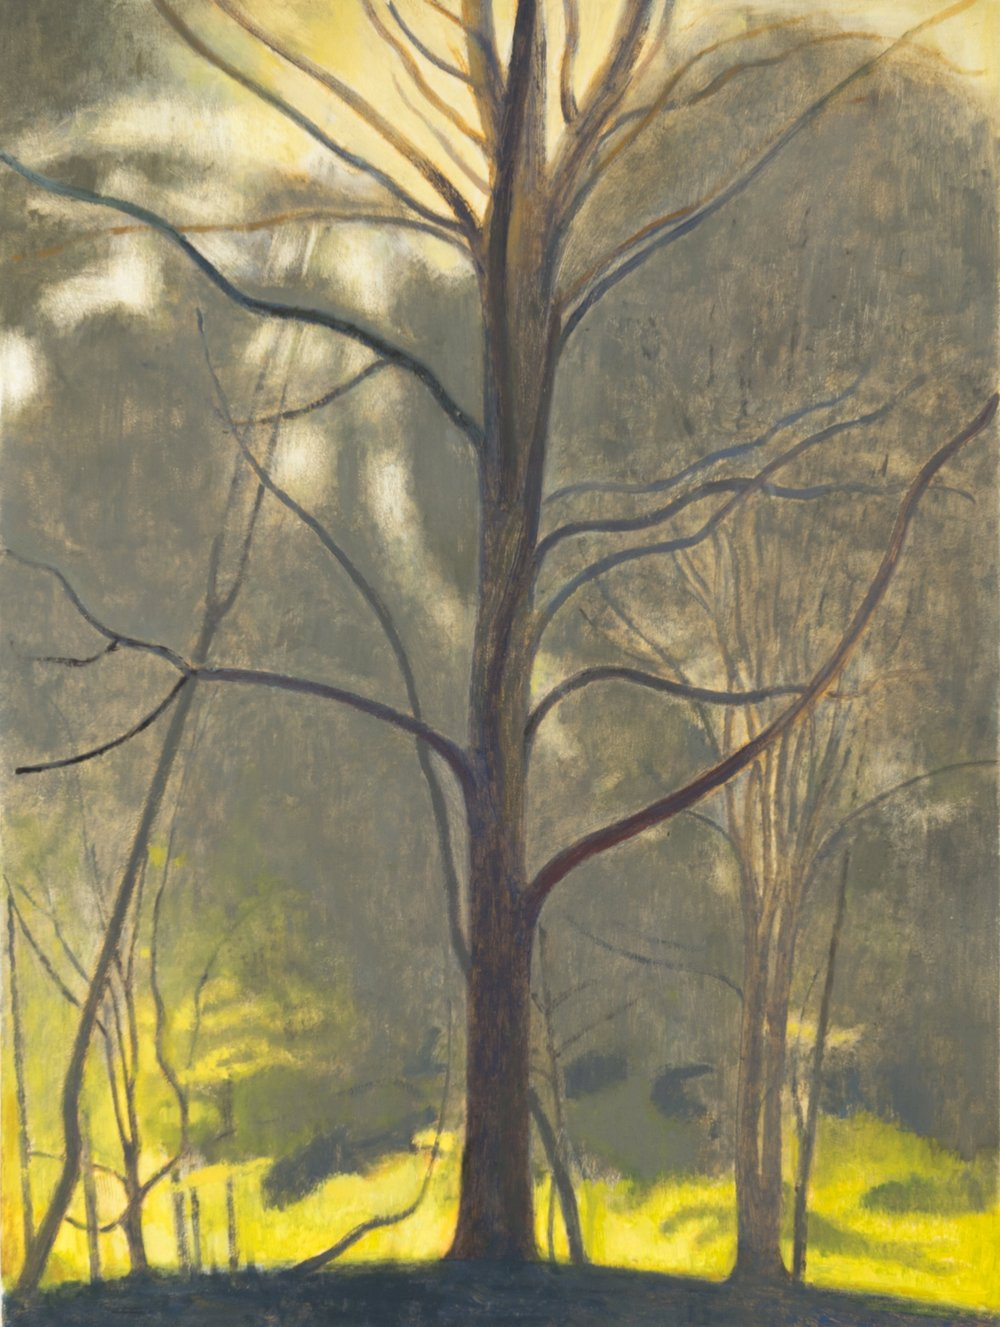 "Tree  , 2017, oil on panel, 12 x 9 inches,      Upland     January 6 - February 10, 2018    Opening Reception - Saturday, January 6, 3-6 pm      Elizabeth Harris Gallery    529 West 20th Street    New York, NY 10011    212.463.9666      press release   Elizabeth Harris Gallery is pleased to present Upland, an exhibition of new work by Ron Milewicz. This will be his fourth solo exhibition with the gallery. It will feature paintings and drawings based on the rural landscape of upstate New York.  For two years Milewicz made drawings in the woods, approaching nature simply and directly with only pencil and paper. In these intimately scaled portrayals of trees, meadows, ponds, and skies, the silvery graphite is seemingly soaked into the soft cotton paper. Critic David Ebony writes in his exhibition essay: ""Milewicz trees are no ordinary specimens . . . the trees appear as spectral presences. Nurtured by ethereal light, crystalline air, and vaporous clouds of moisture—conveyed by finely nuanced tonal shifts—these ancient, ancestral trees possess firm roots and an insistent verticality."" Milewicz's absorption into nature is evident, and the drawings are suffused with solitude.  Milewicz began making paintings of his drawings of landscapes. Relying on memories that are as much emotional as visual, Milewicz's paintings are faithful to both interior and exterior experience. They regard nature as a spiritual wellspring, a view Milewicz shares with artists ranging from the Chinese scholar-painter to the American Luminist. His works assert the overwhelming truth of Nature's elemental and mystical power. Reverence, however, is not confused with nostalgia. Conscious of the contemporary existential threat to Nature, Milewicz's depictions of landscape can be seen as elegies for the landscape itself. They present Nature's force along with its vulnerability, silently marveling at the central miracle of being while admitting the miraculous fact of inevitable dissolution.  At the core of these works is their quiet refusal to restrict themselves to a single vantage point - physical, emotional or philosophical. In Milewicz's landscapes, as in his previous cityscapes and still-lifes, multiple subjects - personal, universal and appropriately un-nameable - underlie the images, giving them their beguiling mystery and presence. As Ebony concludes in his essay, ""In Milewicz's metaphorical picture-language, trees resign themselves to command a terrestrial domain, yet persistently strive to attain a heavenly realm."" Ron Milewicz was born in 1963 in Brooklyn, New York. He studied biology and art history at Cornell University (1979-83), received a master's degree from Columbia University Graduate School of Architecture (1983-86), and attended the New York Studio School (1990-1994) where he has taught drawing and painting for a decade and a half. He has exhibited nationally and internationally, has been widely reviewed, and is represented in numerous private and public collections. He lives and works in Queens, New York, and Gallatin, New York.  The gallery is located at 529 West 20th Street, 6th floor, and is open Tuesday – Saturday, 11-6.  A reception for the artist will take place on Saturday, January 6 from 3-6 pm.   For further information contact Miles Manning at 212-463-9666"